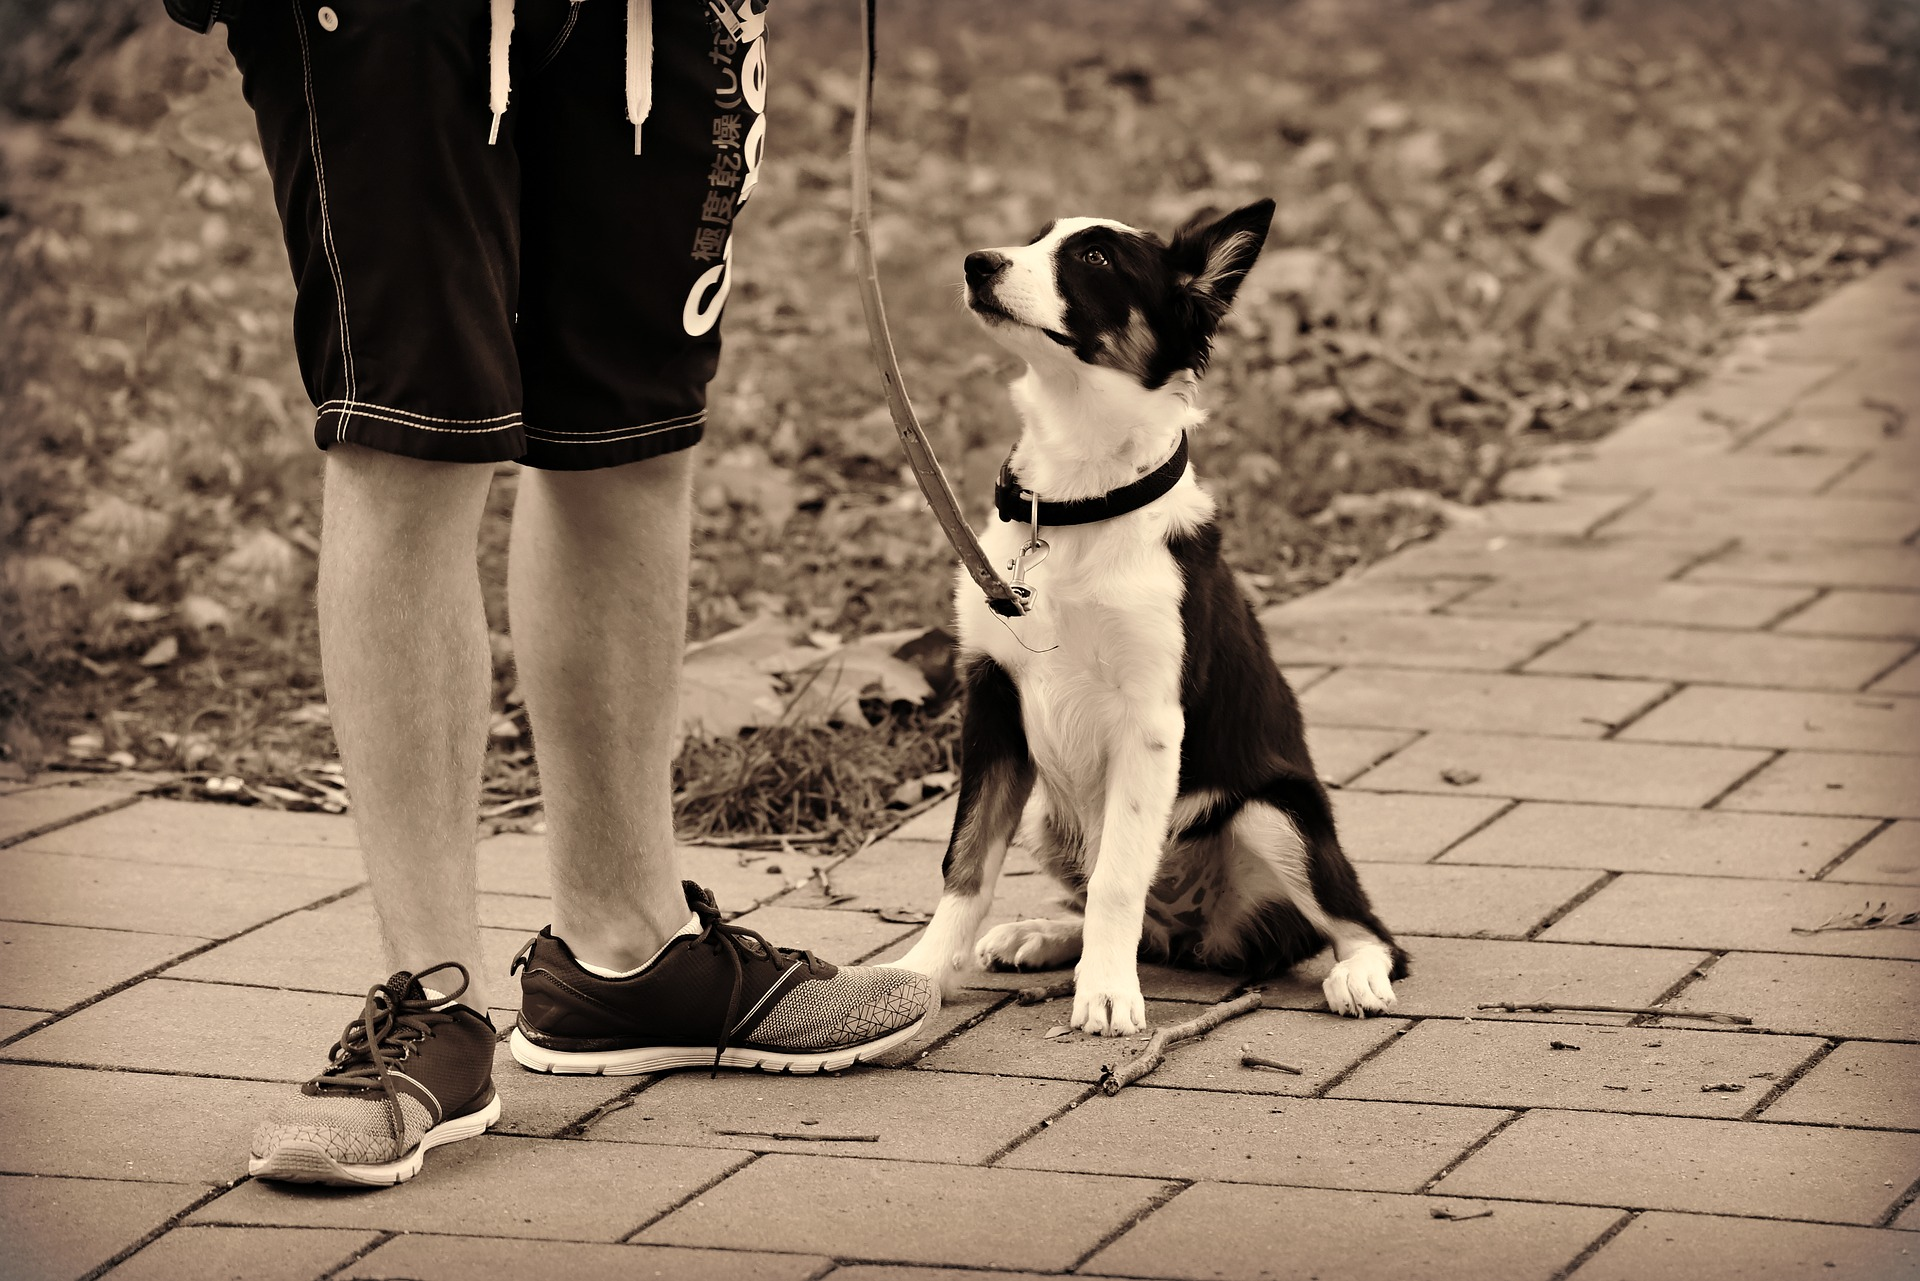 Four Basic Commands Every Dog Should Know